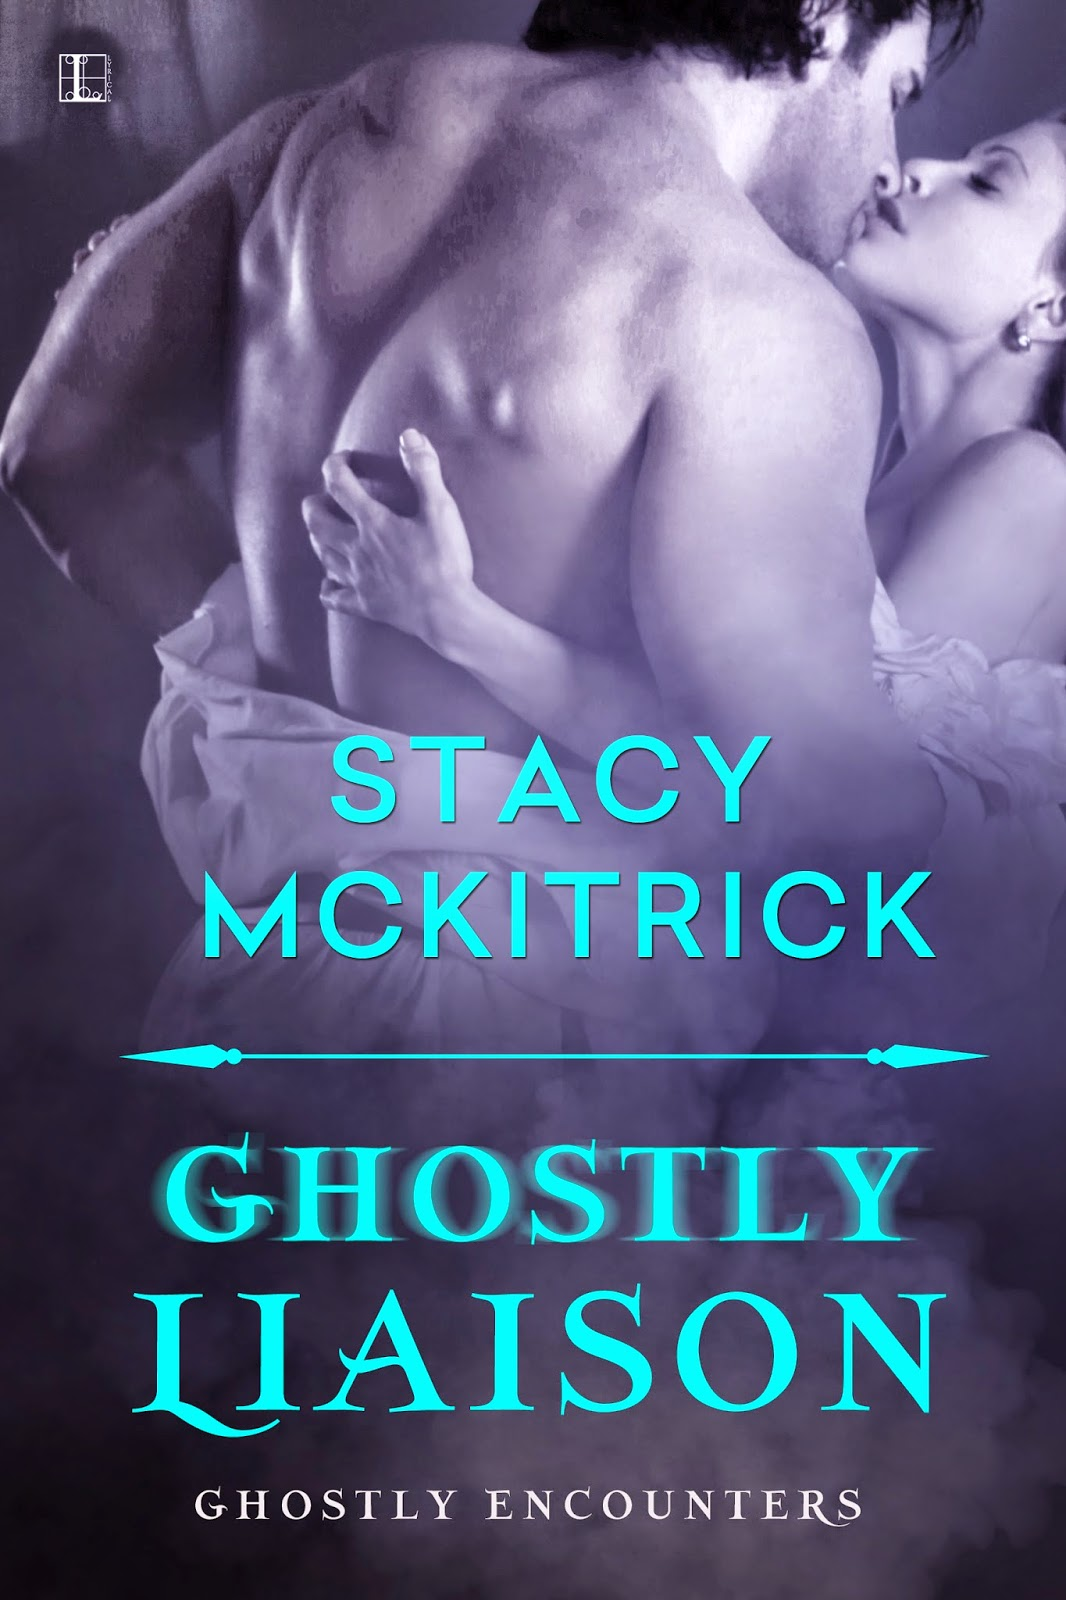 Ghostly Liaison by Stacy McKitrick